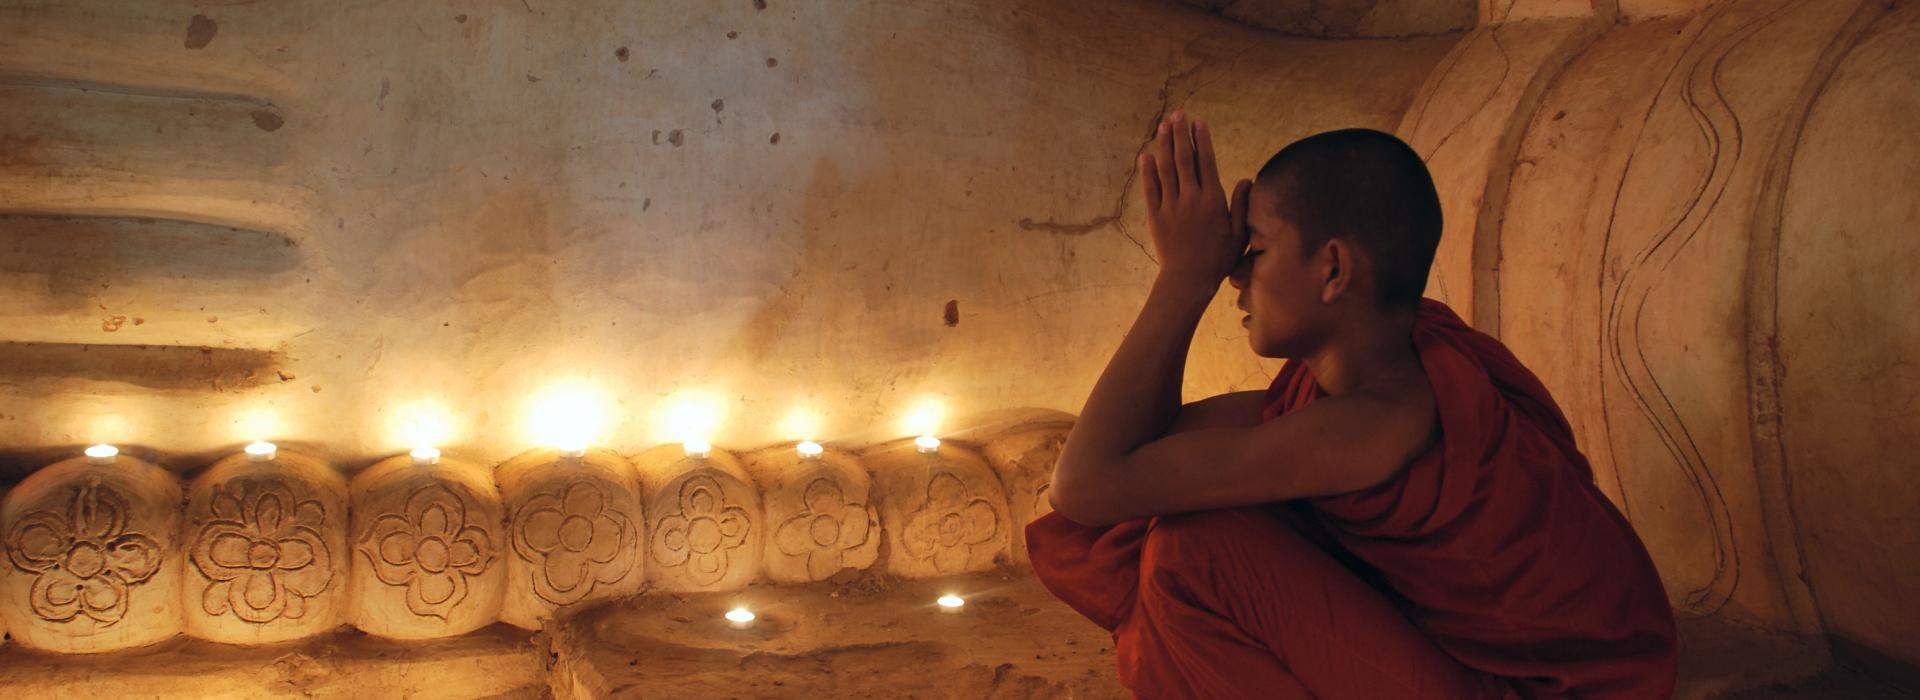 Young man in candlelit stone temple praying.